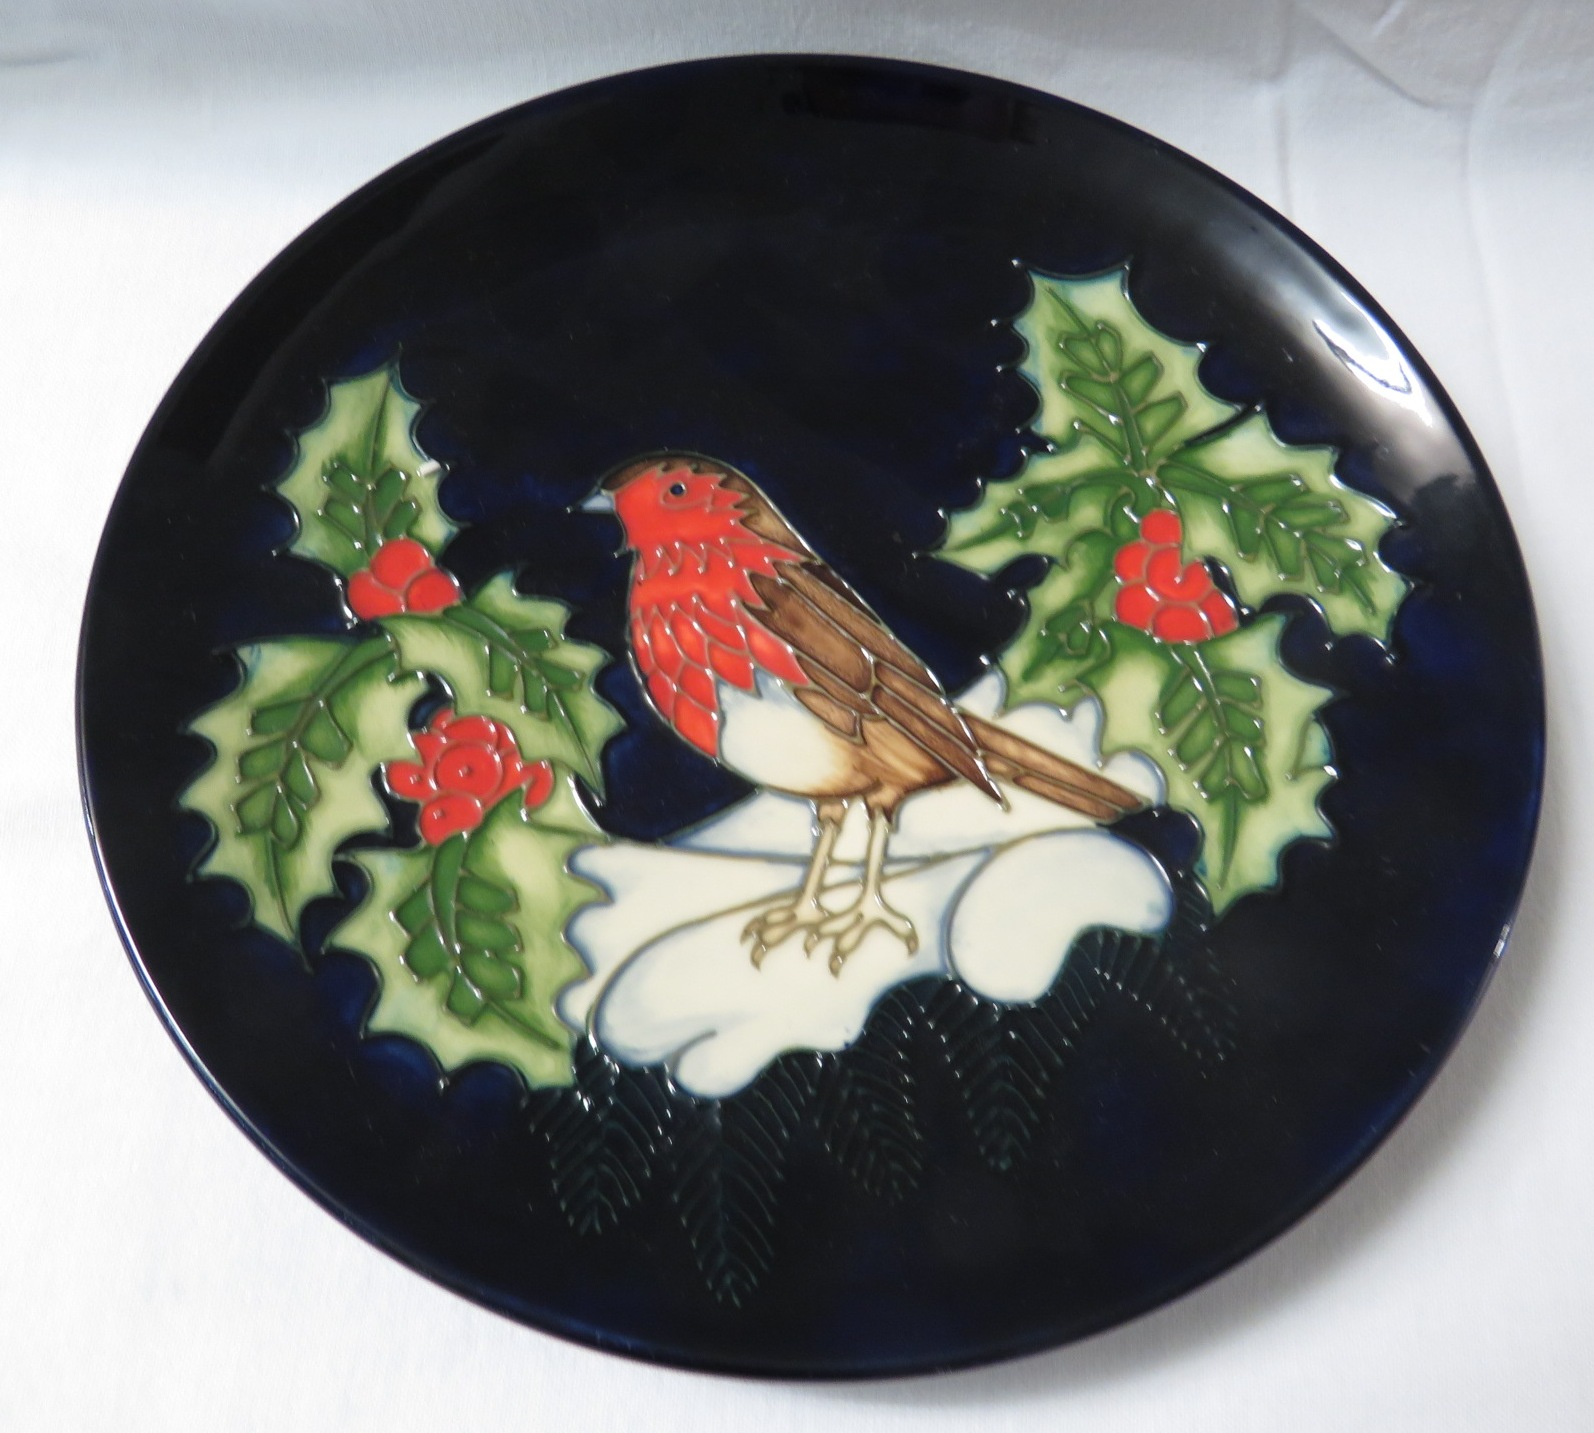 Lot 5 - Moorcroft pottery Christmas plate, dark blue with robin, holly and snow, stamped MOORCROFT MADE IN